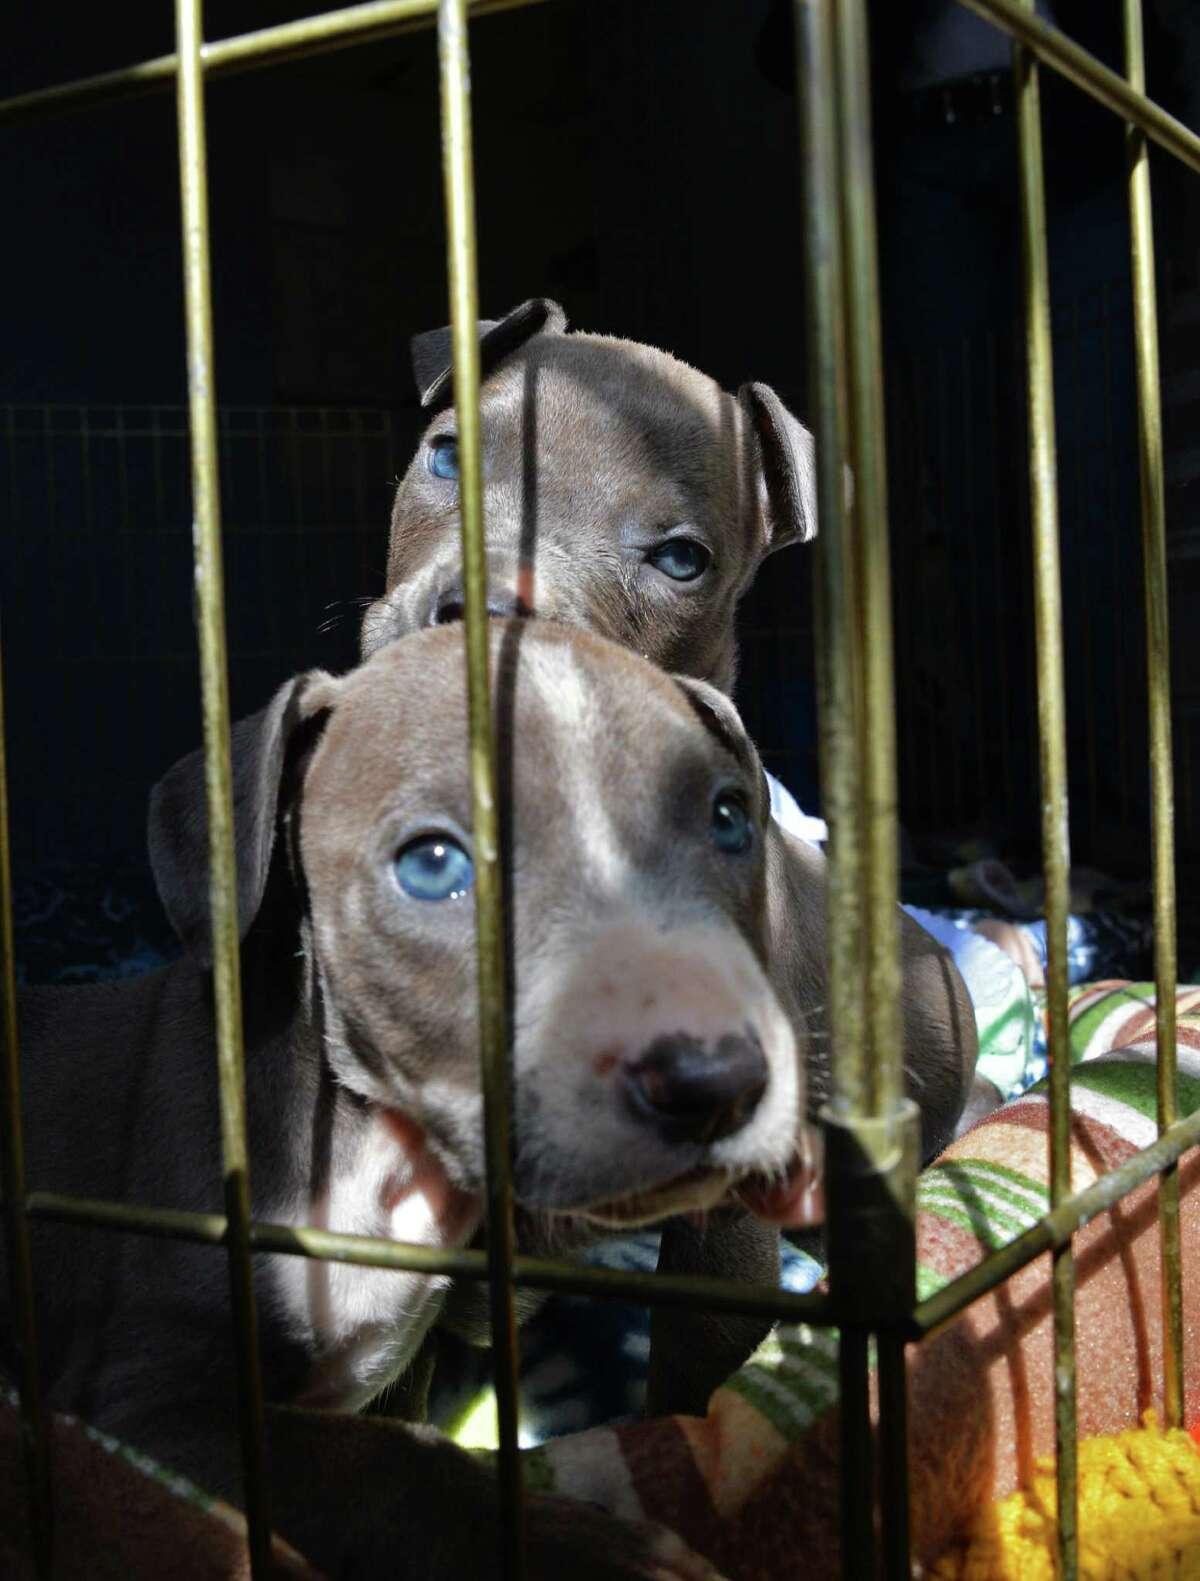 Two of the three pit bull puppies found mutilated and abandoned in Albany and now at the Mohawk Hudson Animal Shelter, Tuesday Sept. 11, 2012, in Menands, N.Y. (John Carl D'Annibale / Times Union)